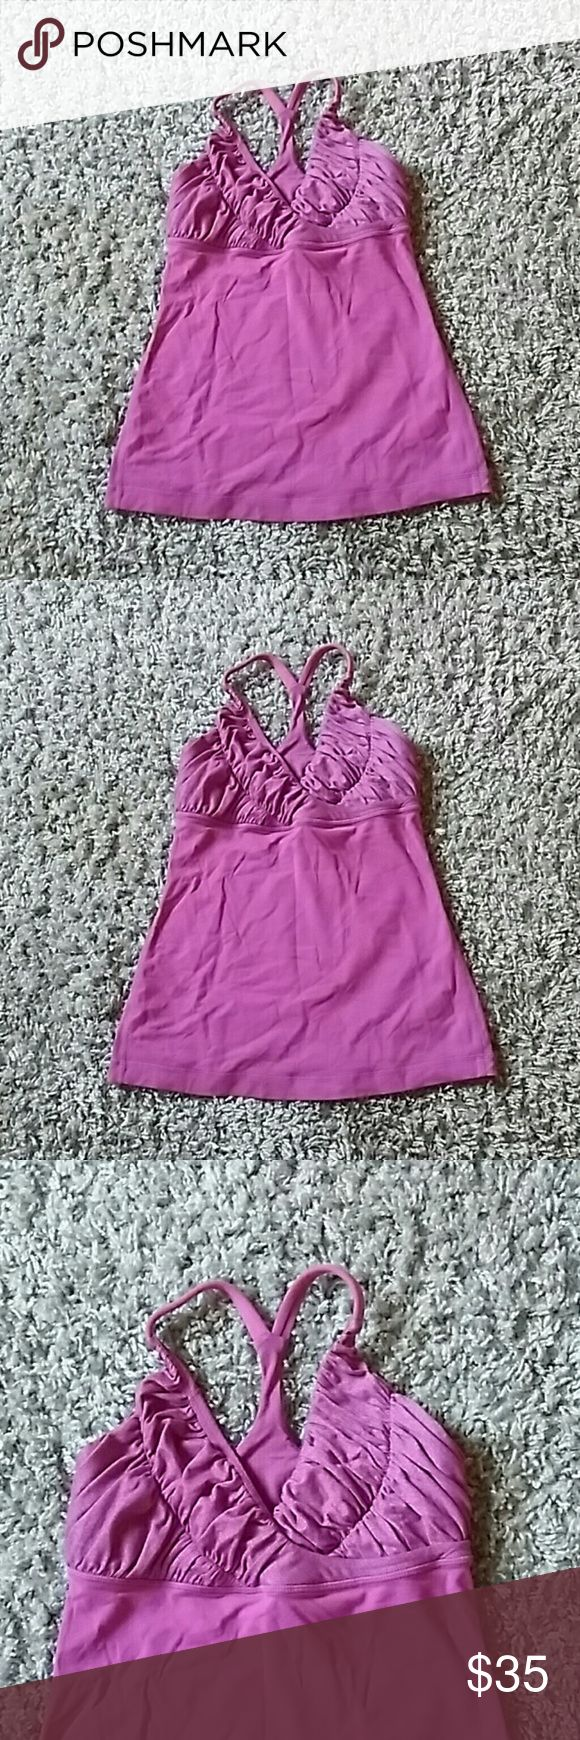 Lululemon athletica Very nice women top perfect for workout lululemon athletica Tops